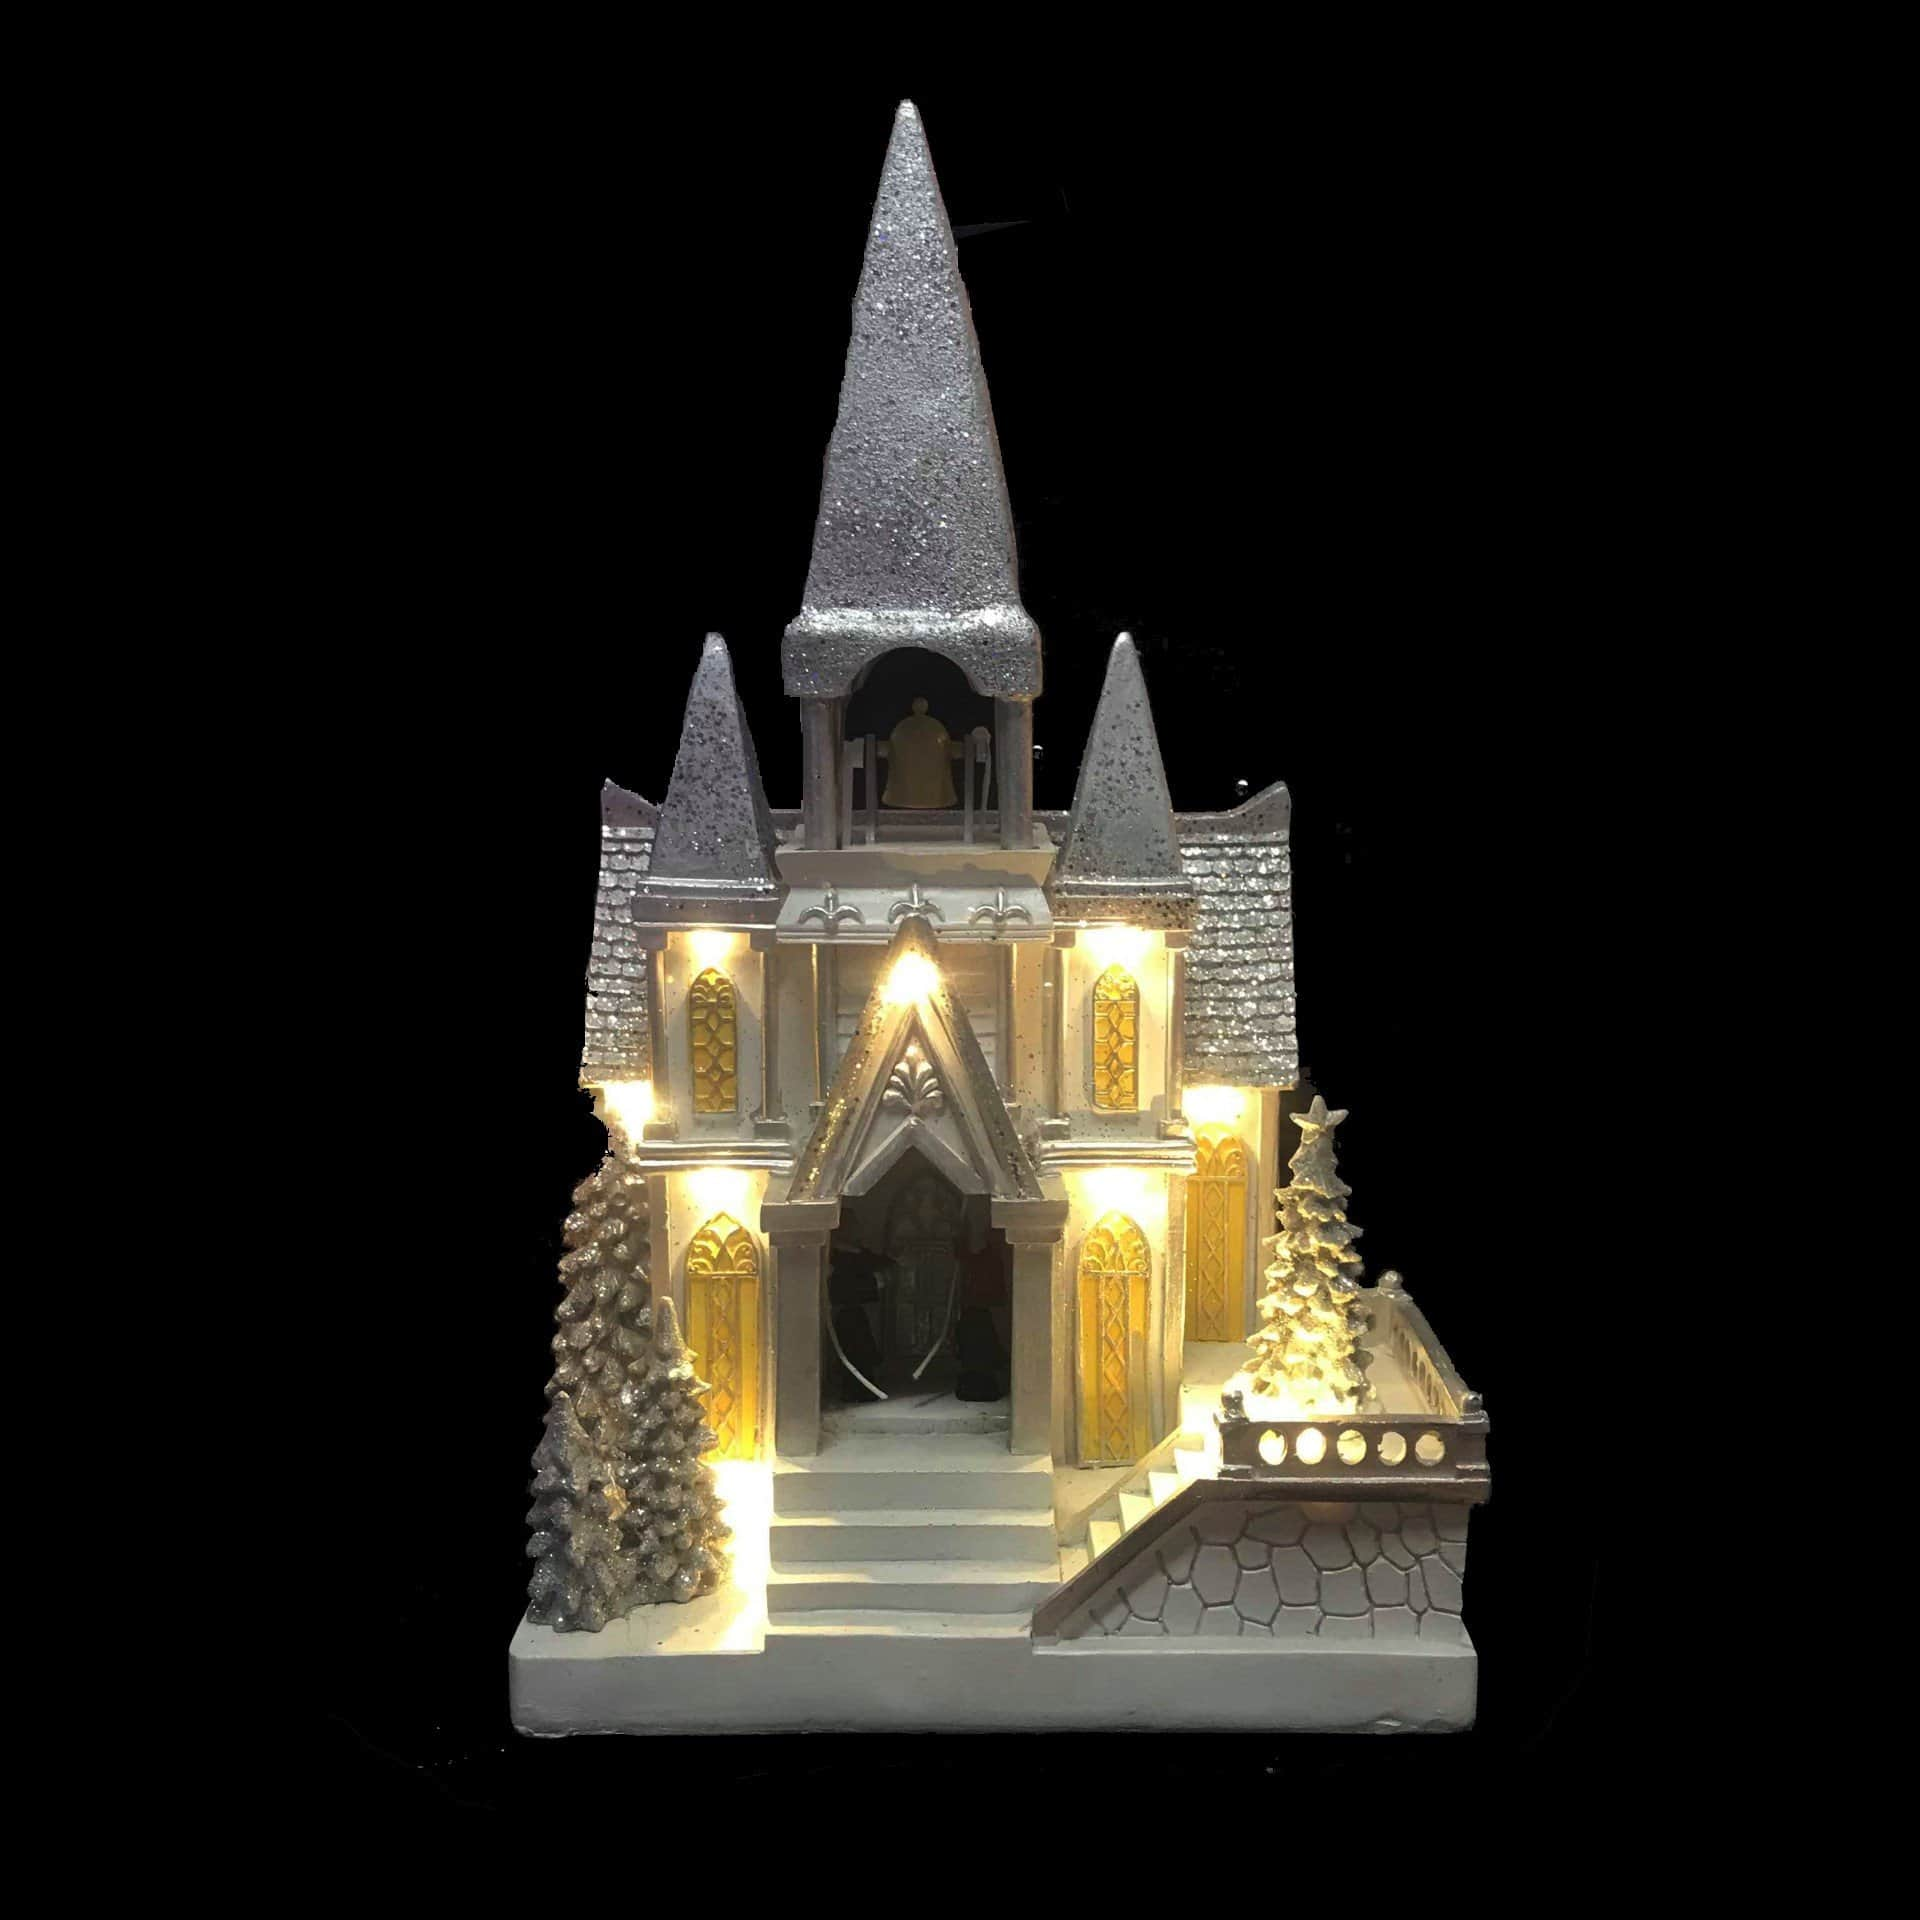 LED White and Silver Church with Christmas Tree